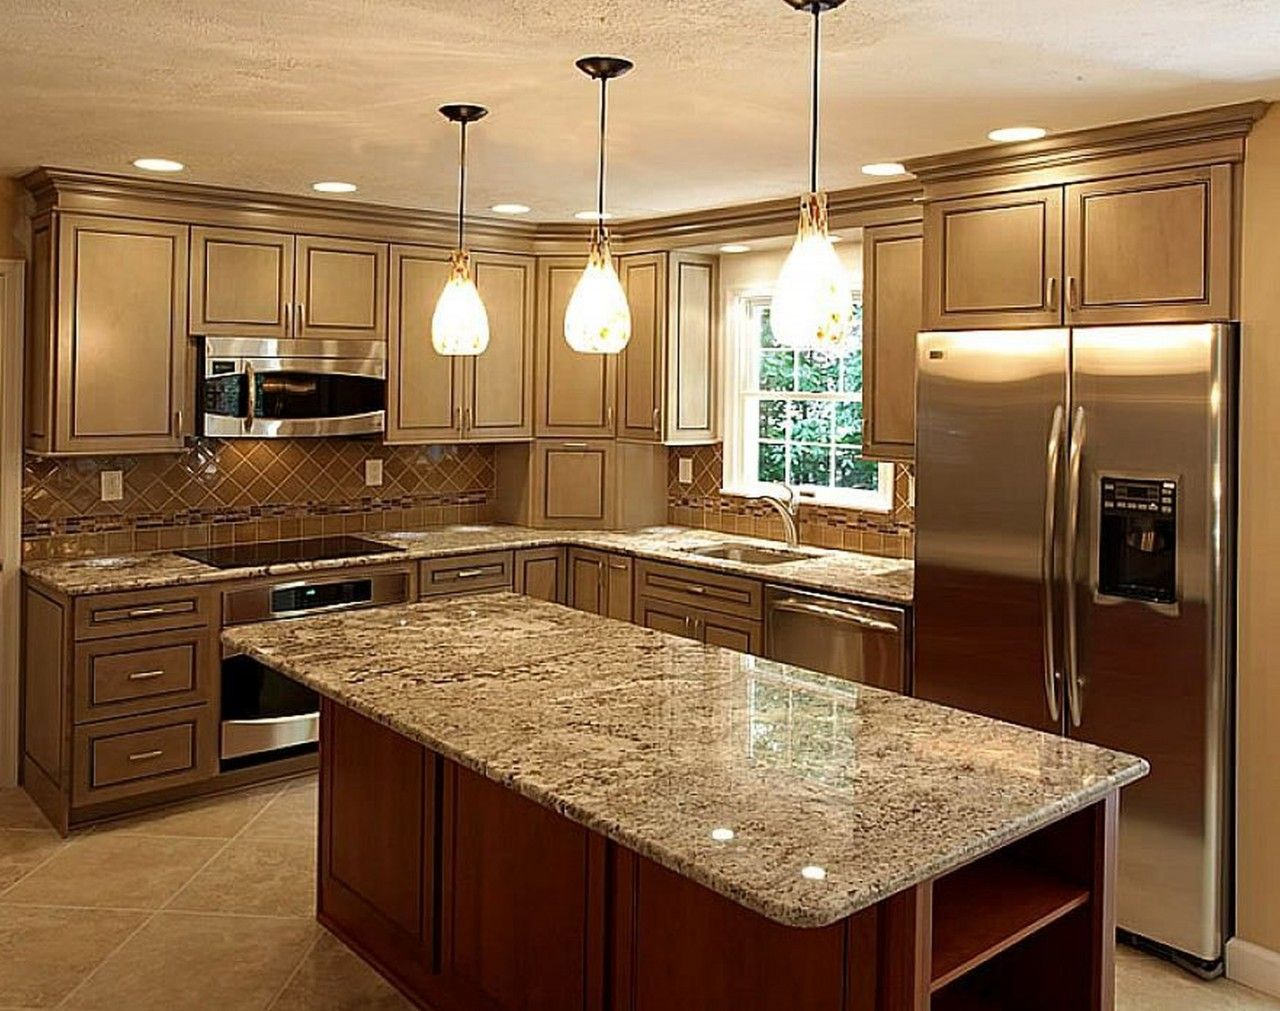 Marble kitchen countertops pros and cons - Endearing Home Depot Quartz Countertops Build Magnificent Cambria Quartz Countertops Colors Wonderful Element Ambience Brown